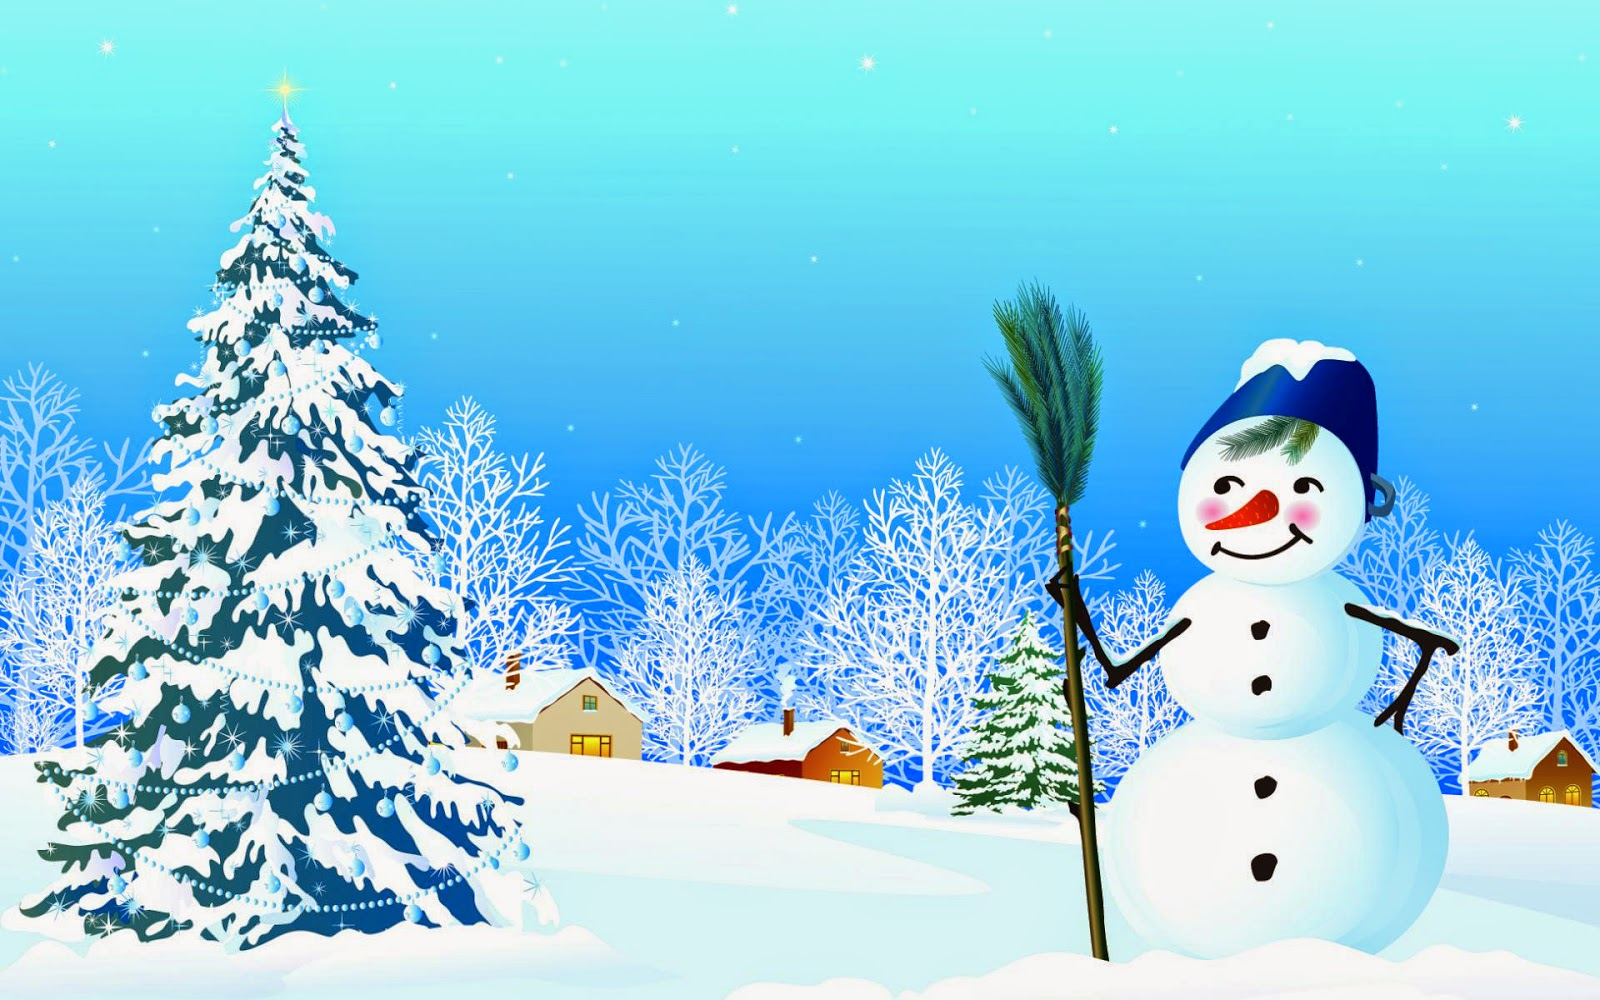 funny-snowman-cartoon-drawing-images-for-kids-and-children.jpg